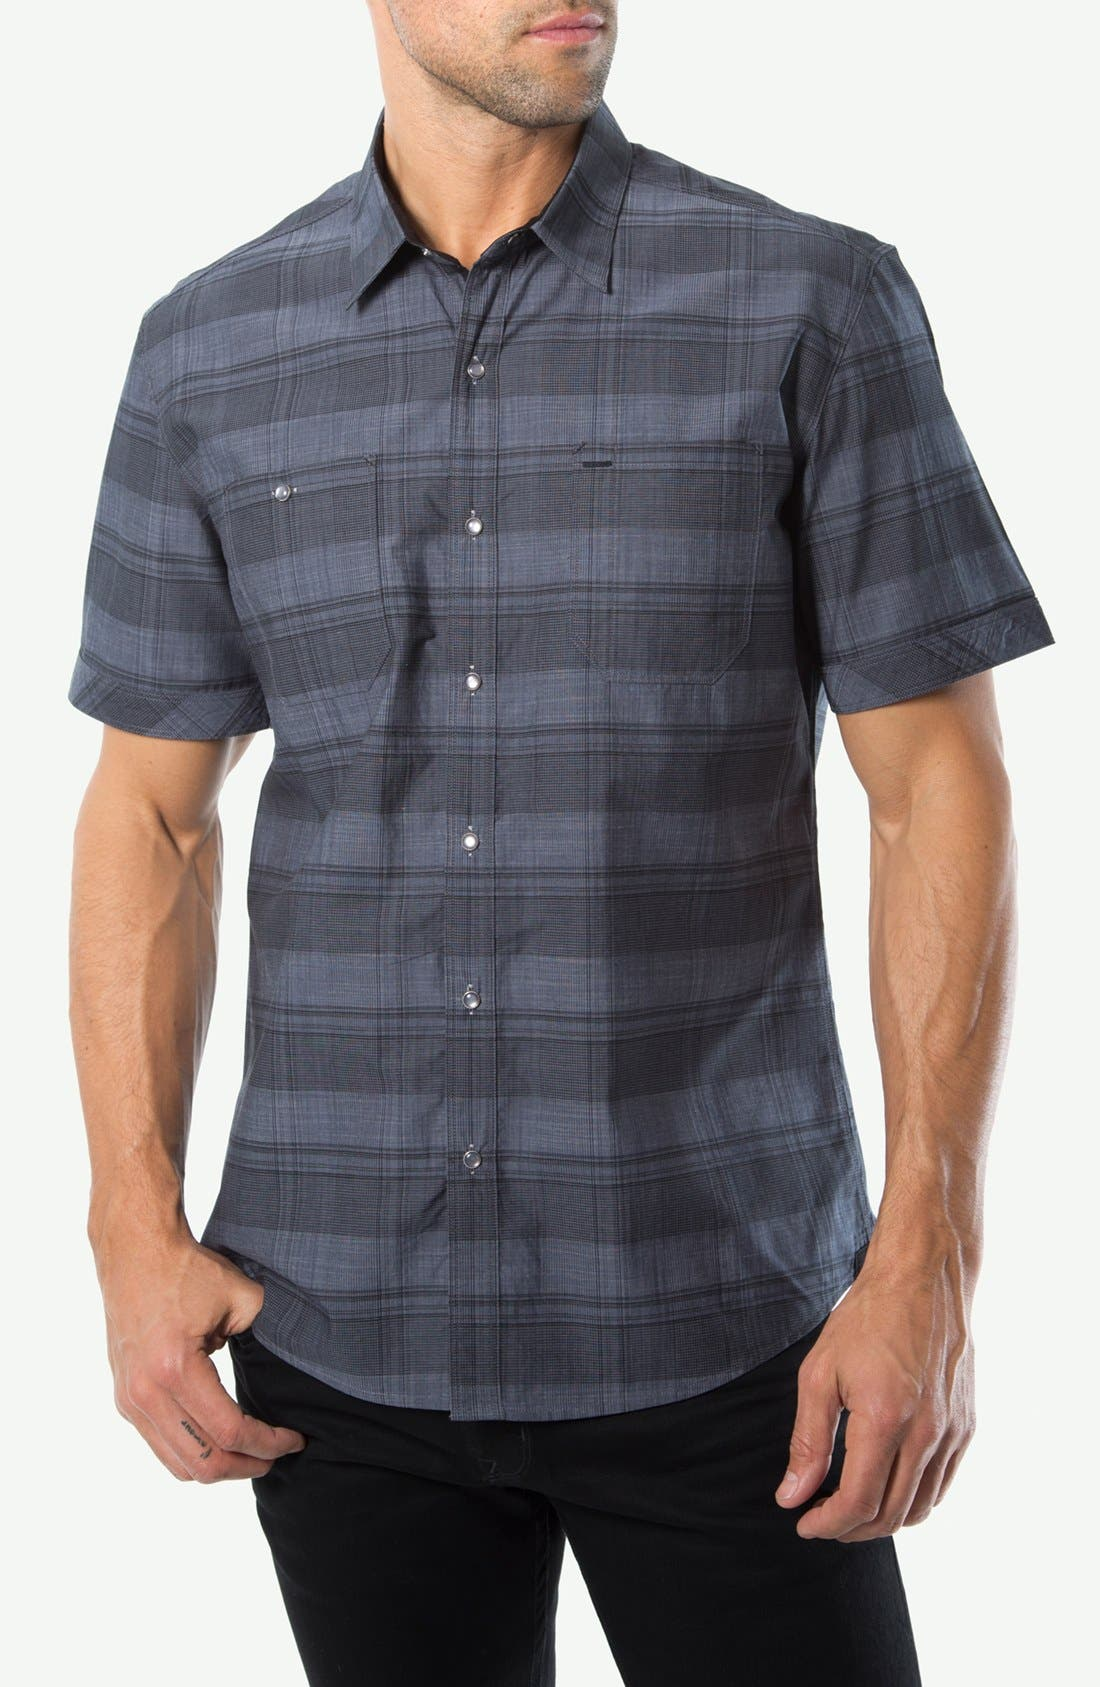 Alternate Image 1 Selected - 7 Diamonds 'We Are Young' Short Sleeve Plaid Shirt